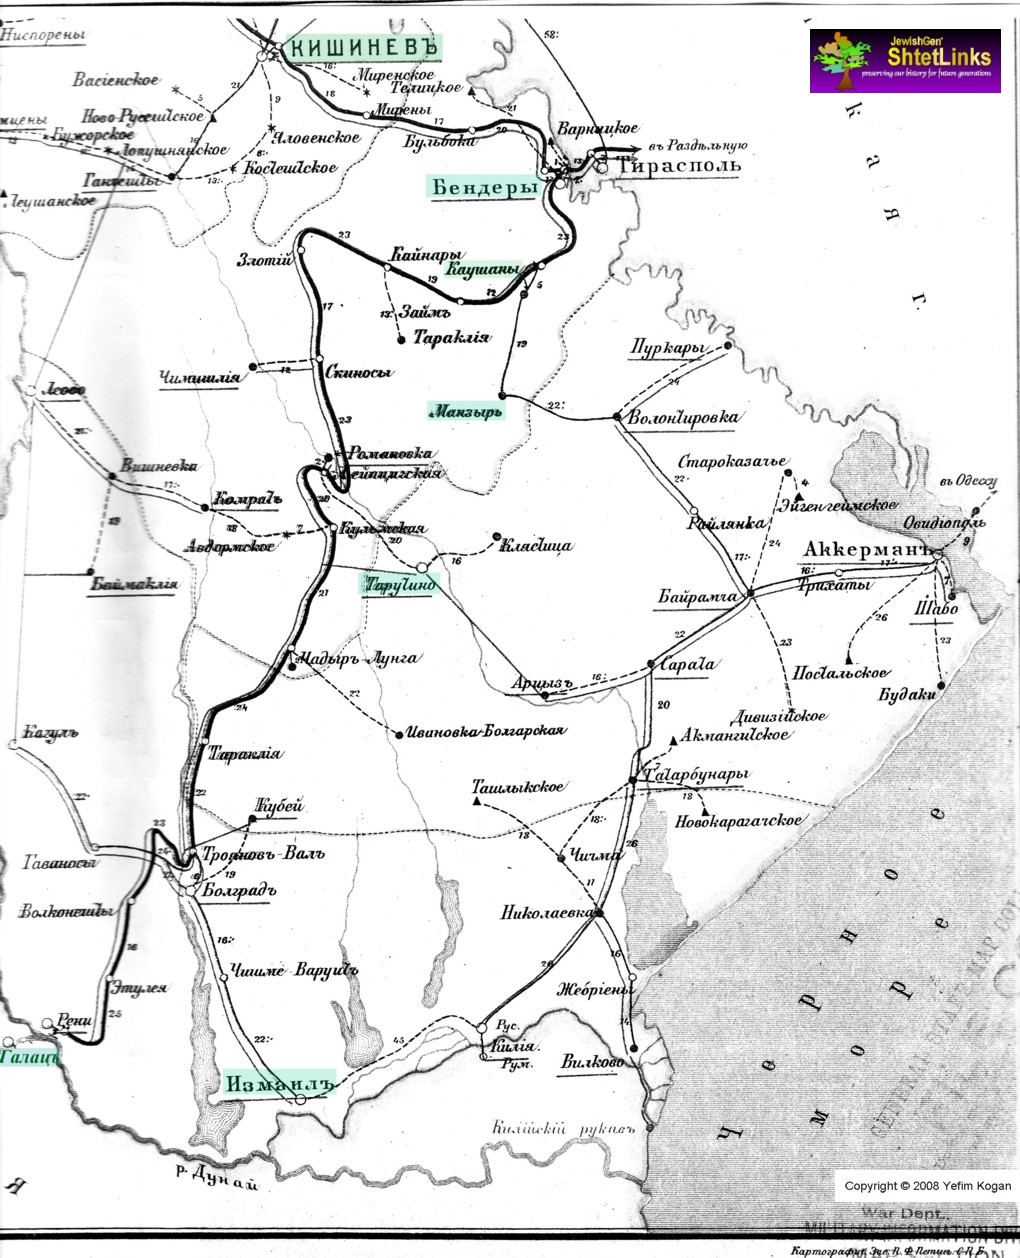 an overview of the history and settlement of jews in russia The history of latgale:  historic overview of the development of the jewish settlement in russia until the 18th  riga jews after wwii overview of the jewish.